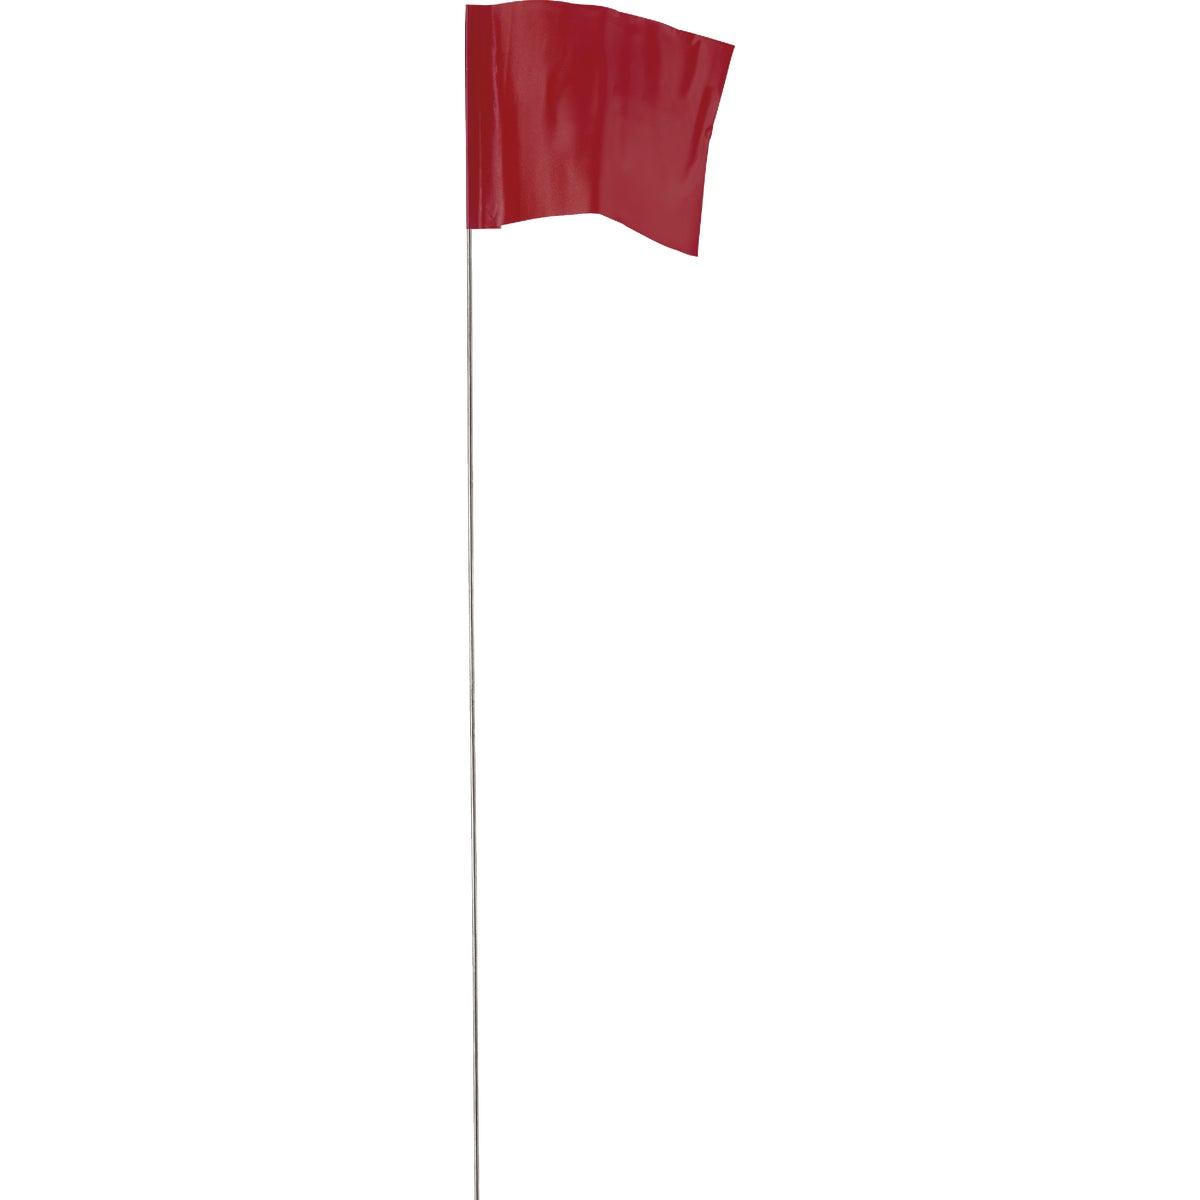 100PK RED FLAGS - 2034207 by Irwin Industr Tool